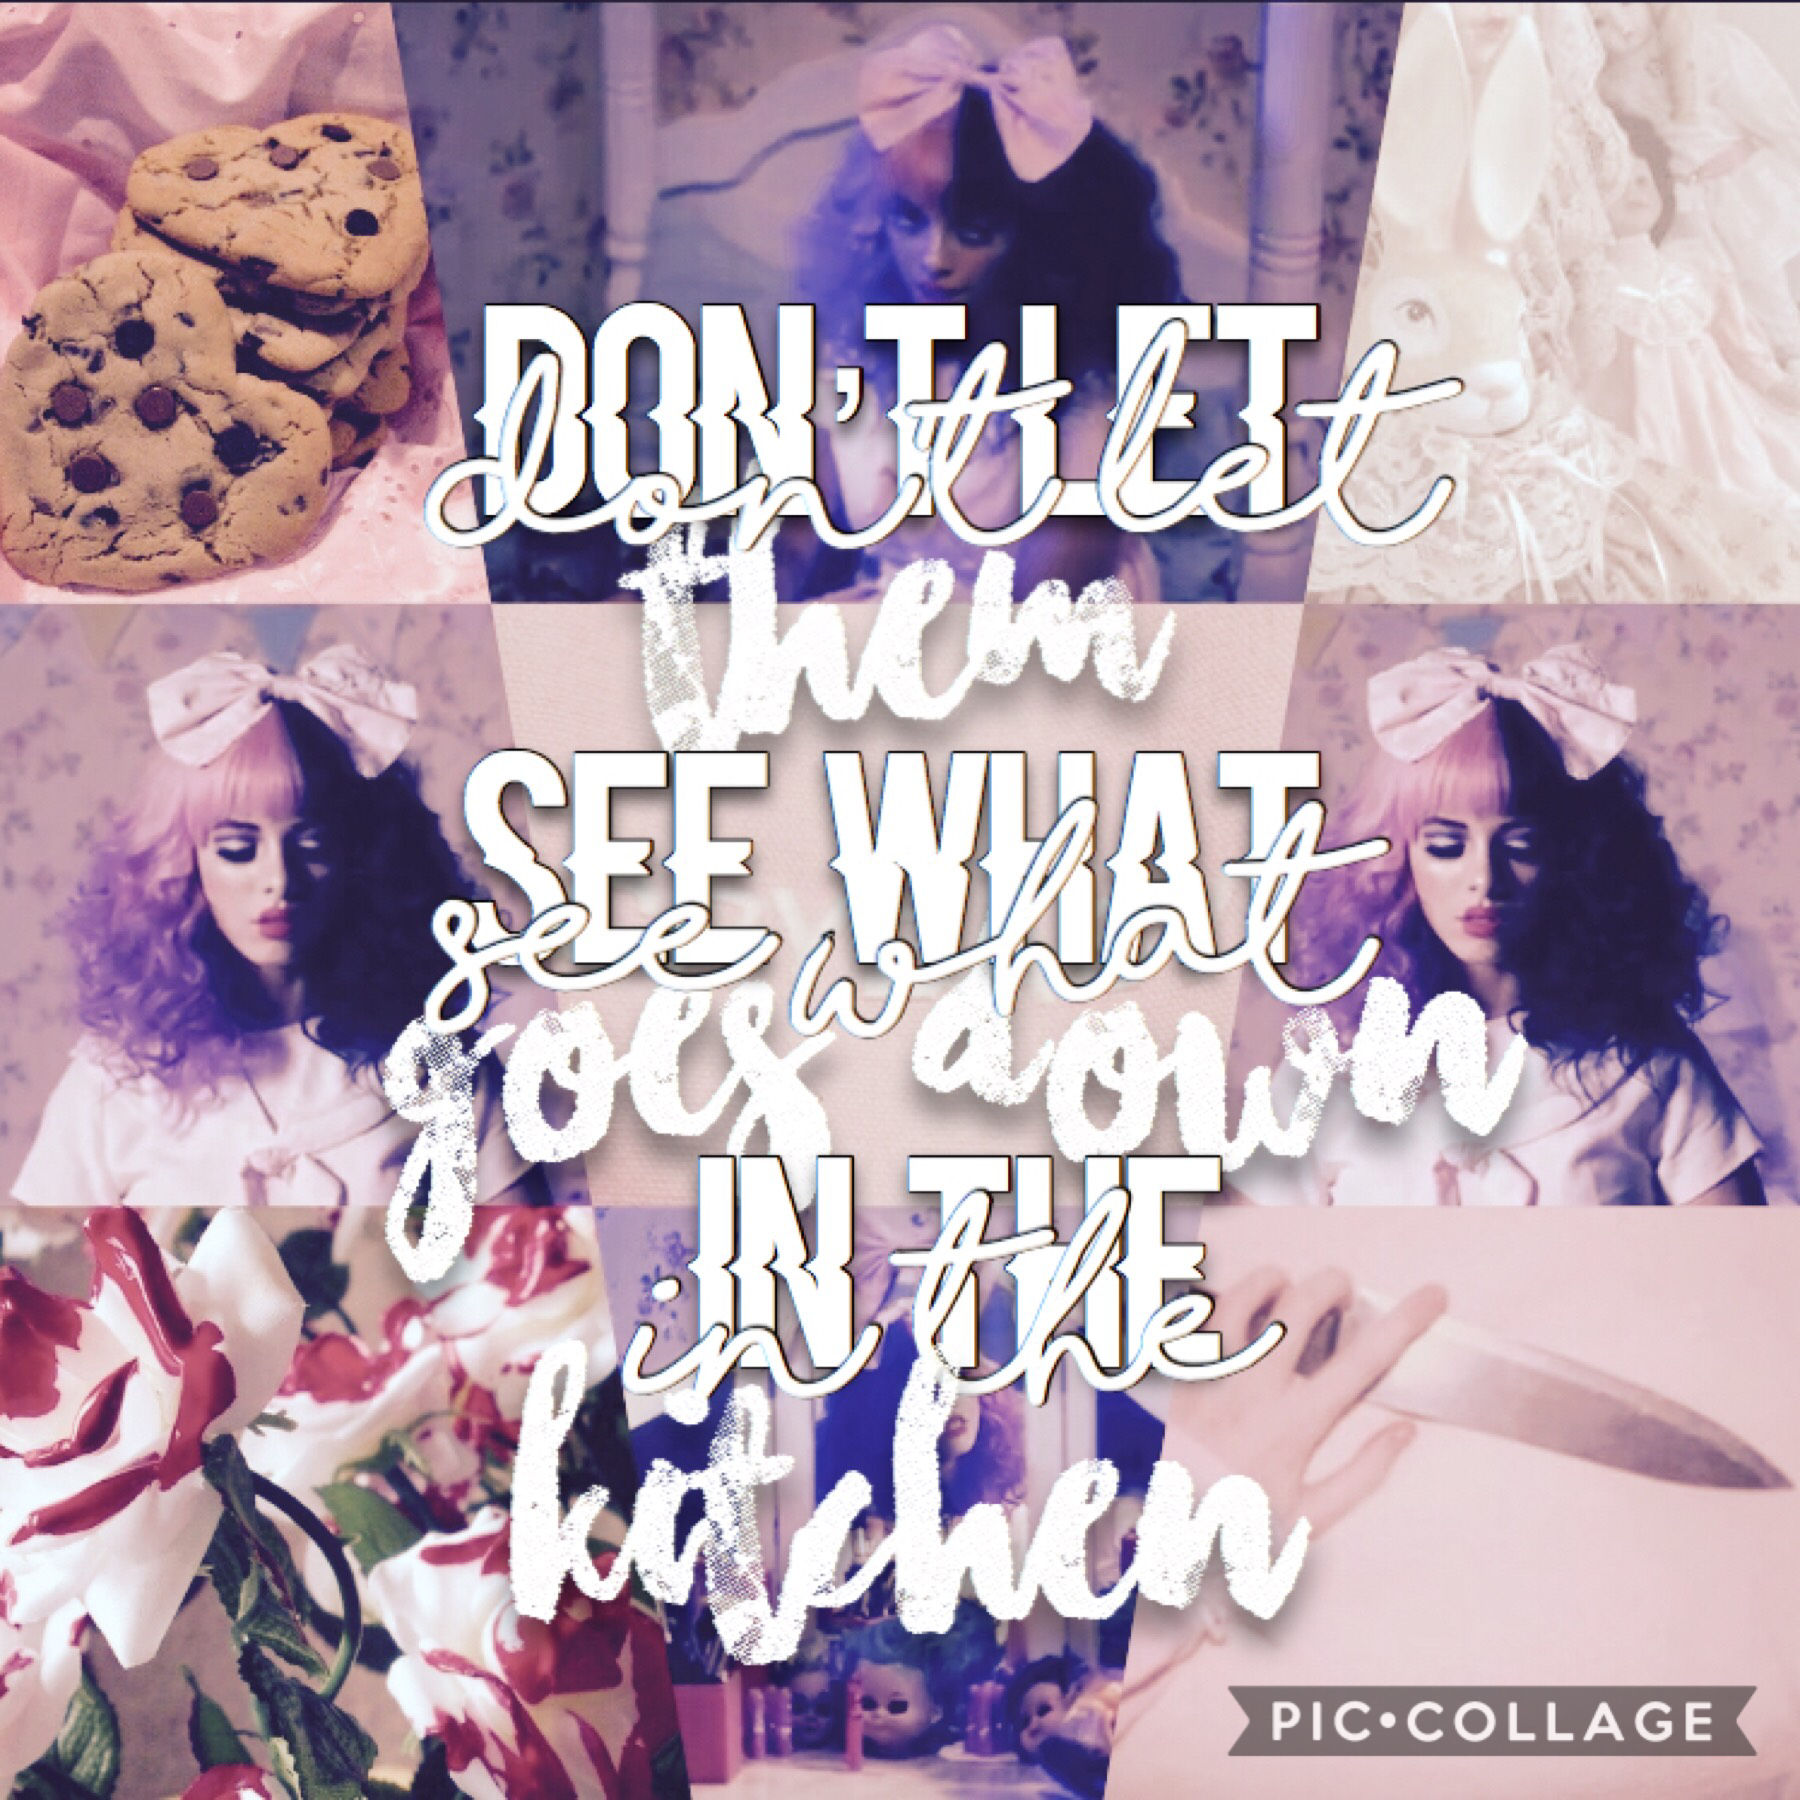 TAP mELANIE MARTINEZ EDIT CAUSE I LOVE HER I KNOW EVERY SONG BY HEART SHE WAS MY FIRST FAVORITE SINGER  playlist: Dollhouse by Melanie Martinez Bohemian Rhapsody by Queen (Brendon Urie Cover)